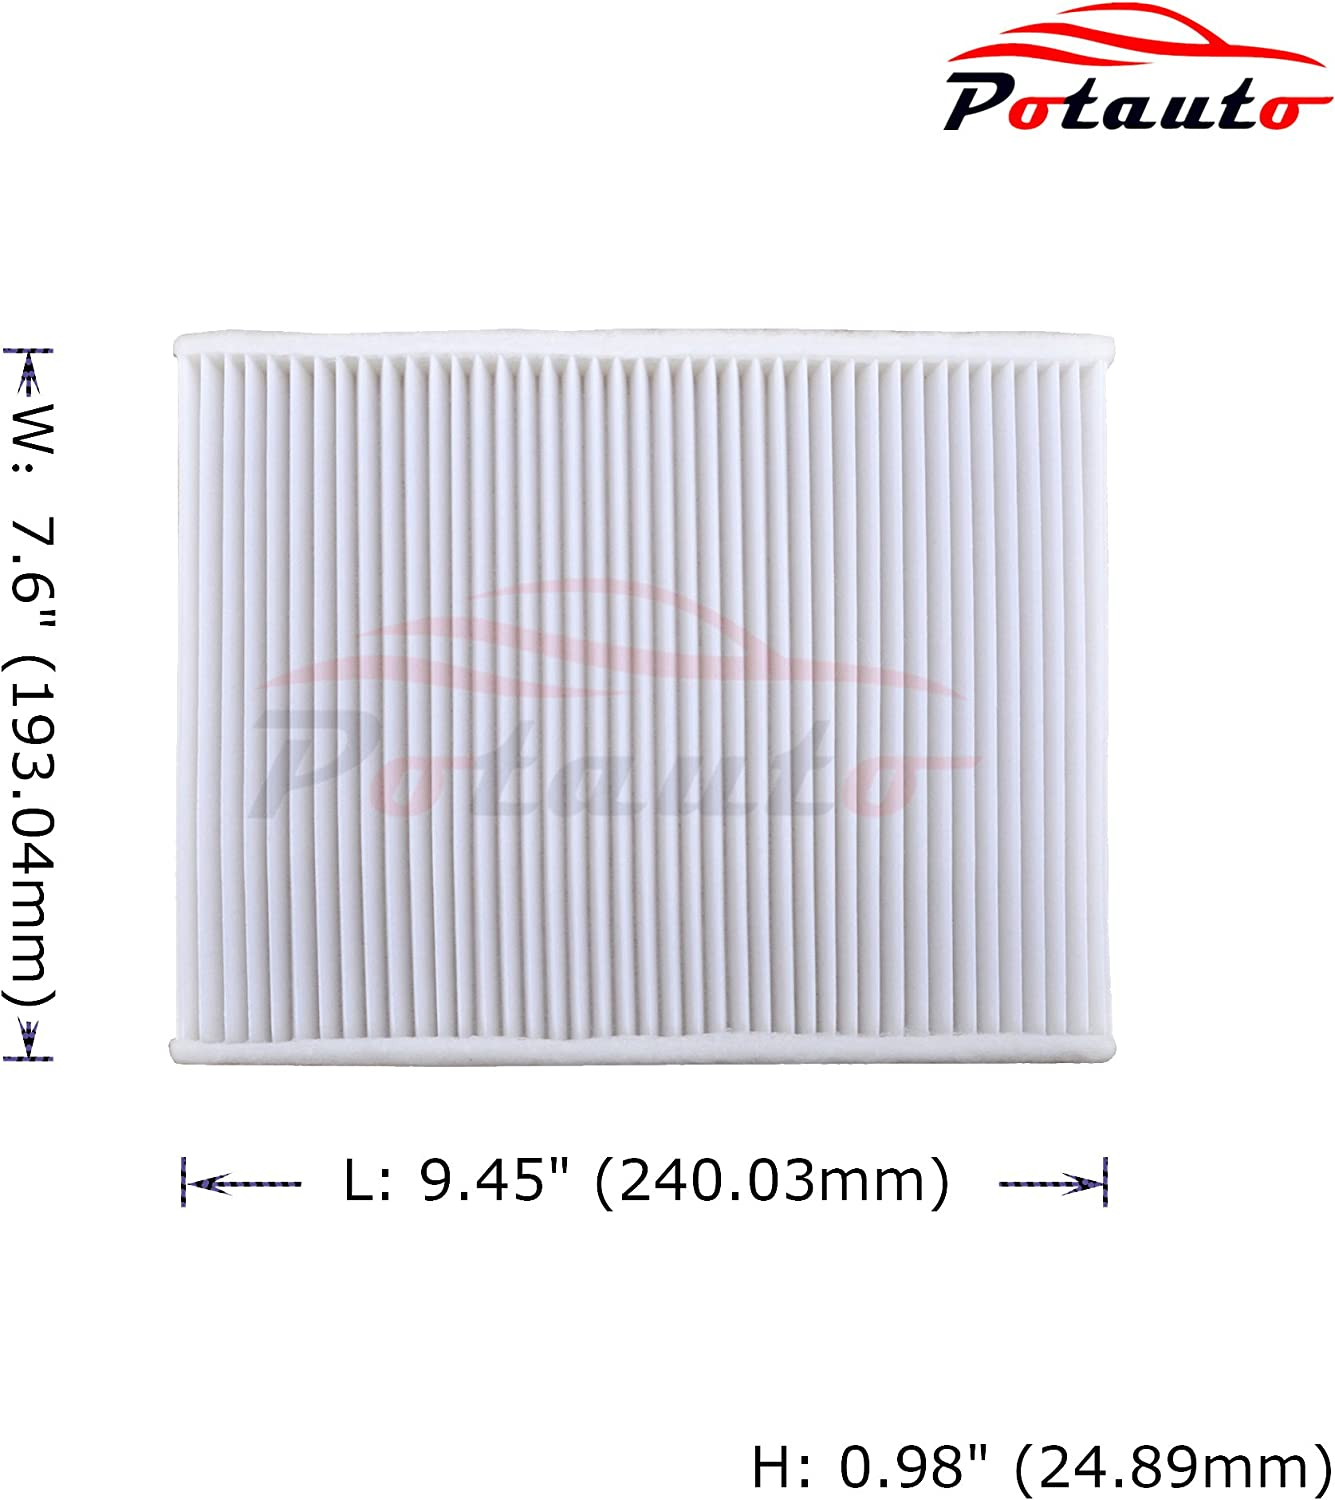 Standard White Replacement High Performance Car Cabin Air Filter for FORD CF11670 Ecosport POTAUTO MAP 1042W Fiesta